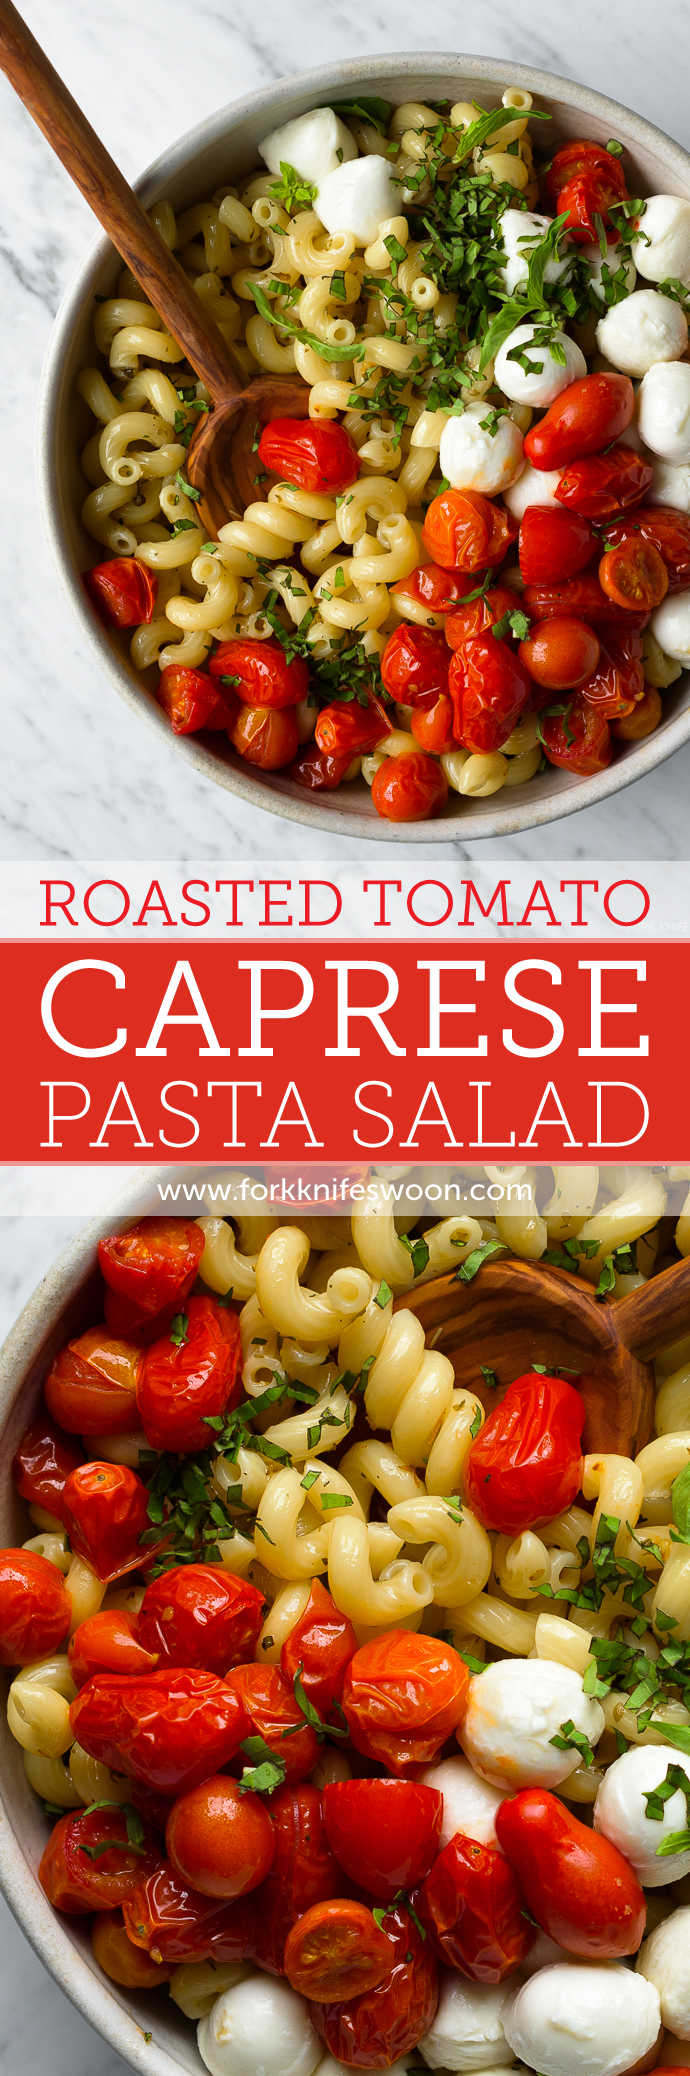 Quick Roasted Tomato Caprese Pasta Salad | Fork Knife Swoon @forkknifeswoon